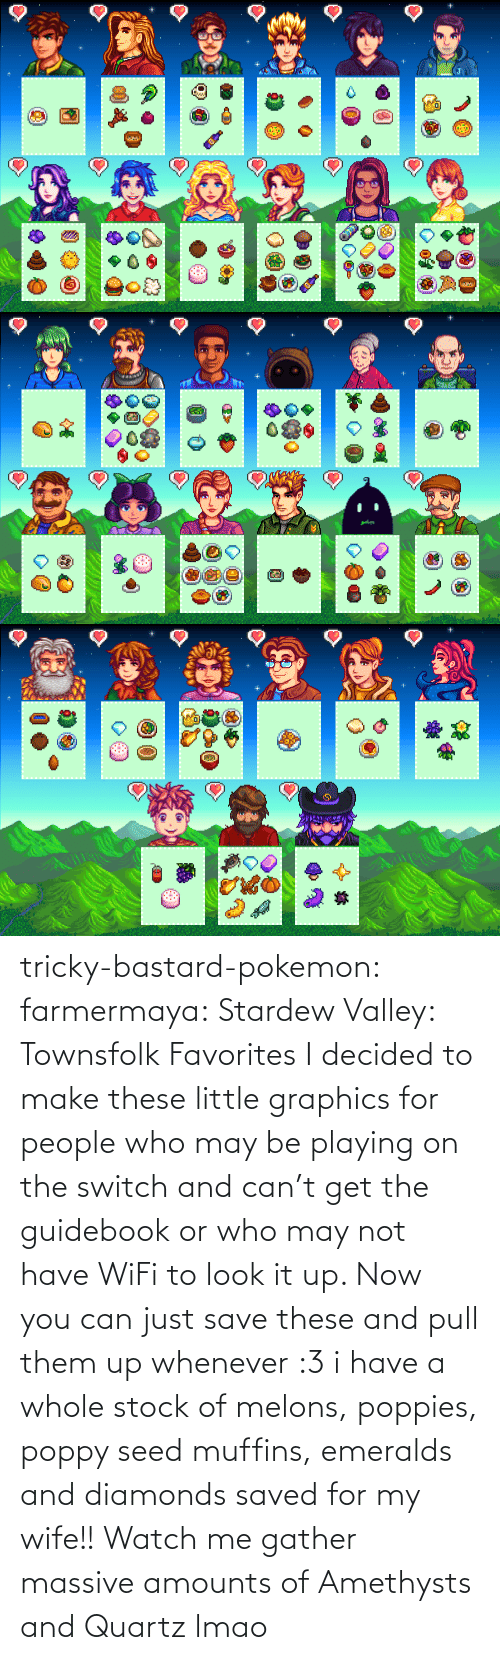 Whole: tricky-bastard-pokemon:  farmermaya: Stardew Valley: Townsfolk Favorites  I decided to make these little graphics for people who may be playing on the switch and can't get the guidebook or who may not have WiFi to look it up. Now you can just save these and pull them up whenever :3   i have a whole stock of melons, poppies, poppy seed muffins, emeralds and diamonds saved for my wife!!    Watch me gather massive amounts of Amethysts and Quartz lmao